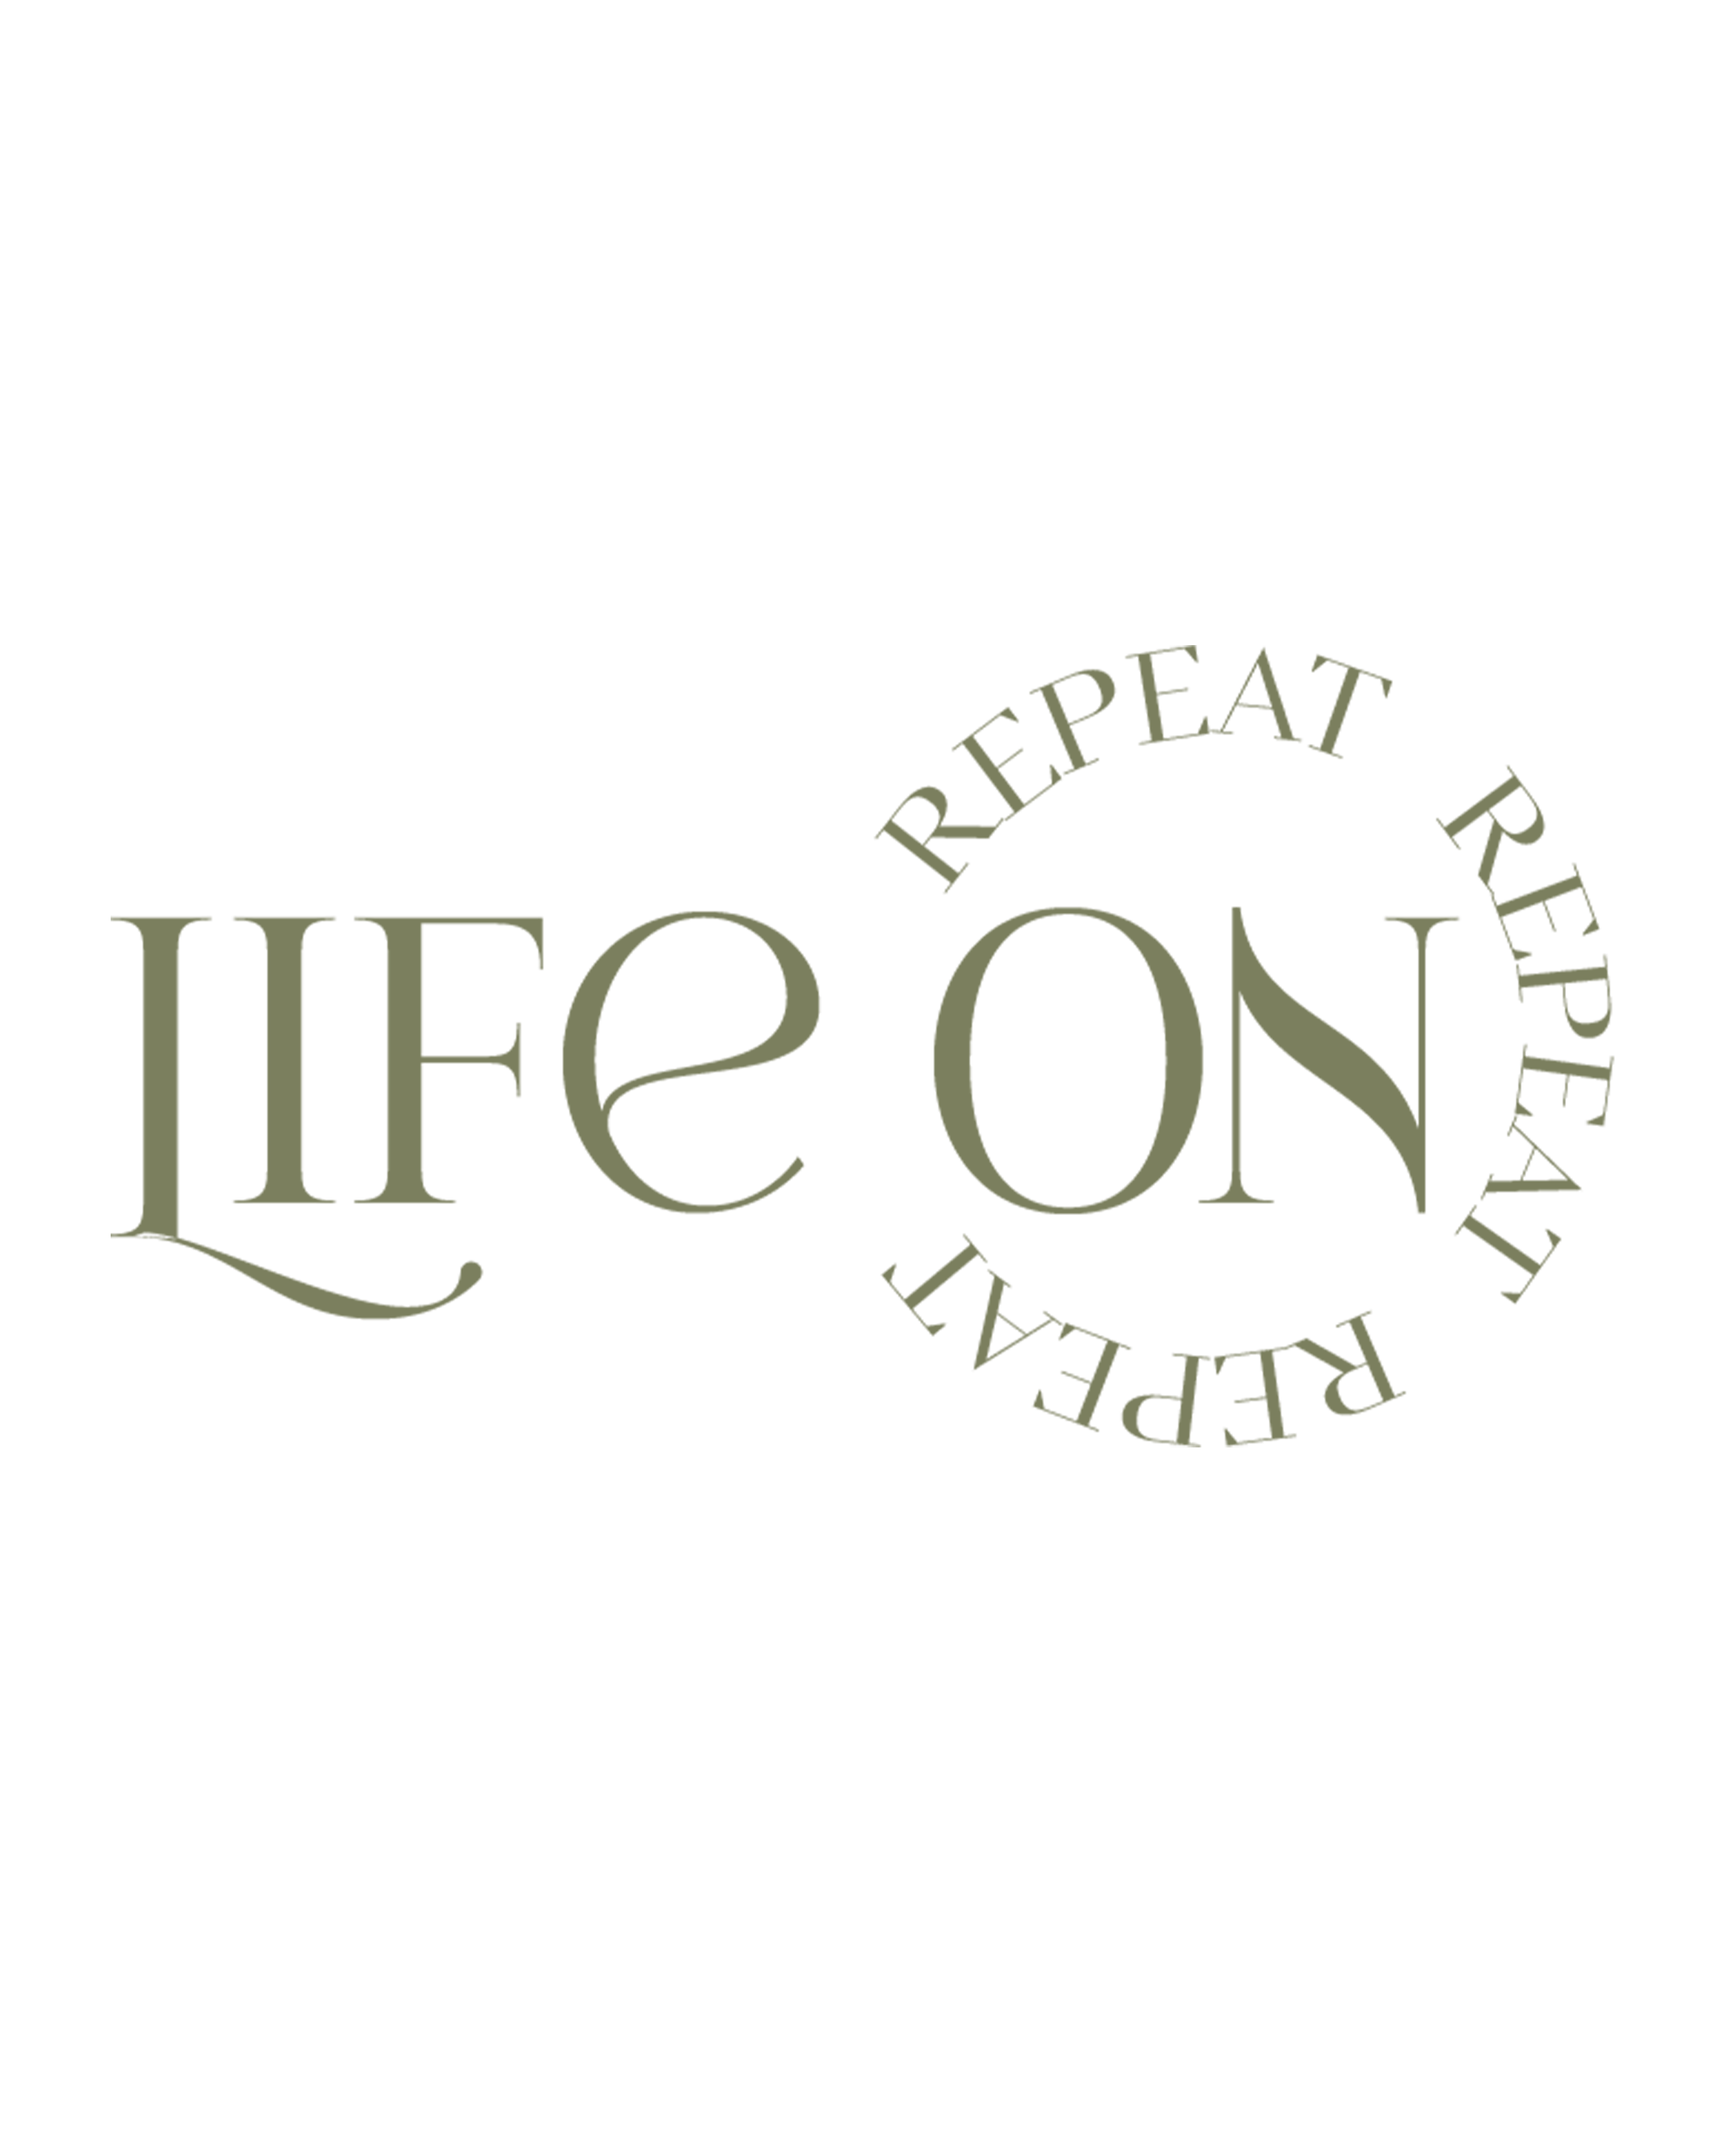 Subscribe to Life on Repeat Podcast